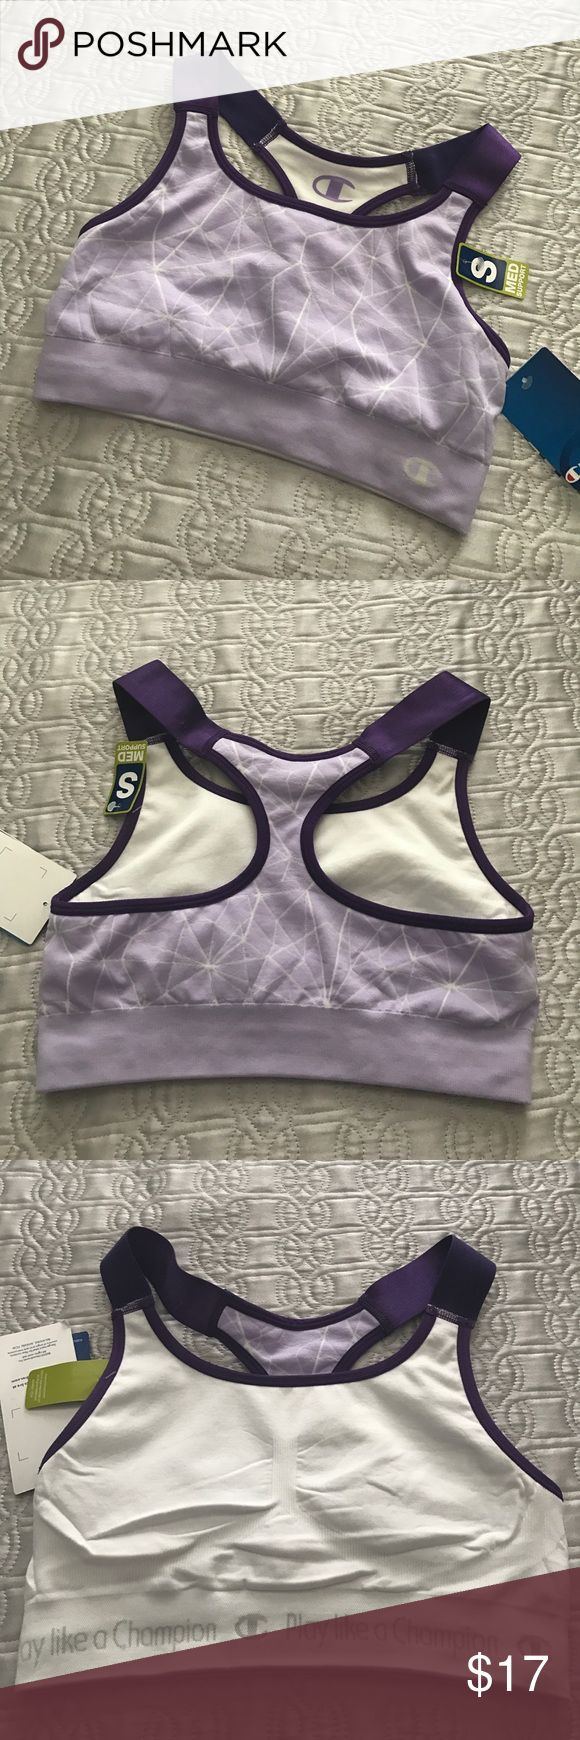 NWT Champion Purple Sports Bra Racerback NWT champion sports bra.  Size small, medium support.  The material and straps are very stretchy, but I'd say it fits more like an xs.  Depending on how you prefer the fit I guess.  Make an offer! Champion Intimates & Sleepwear Bras